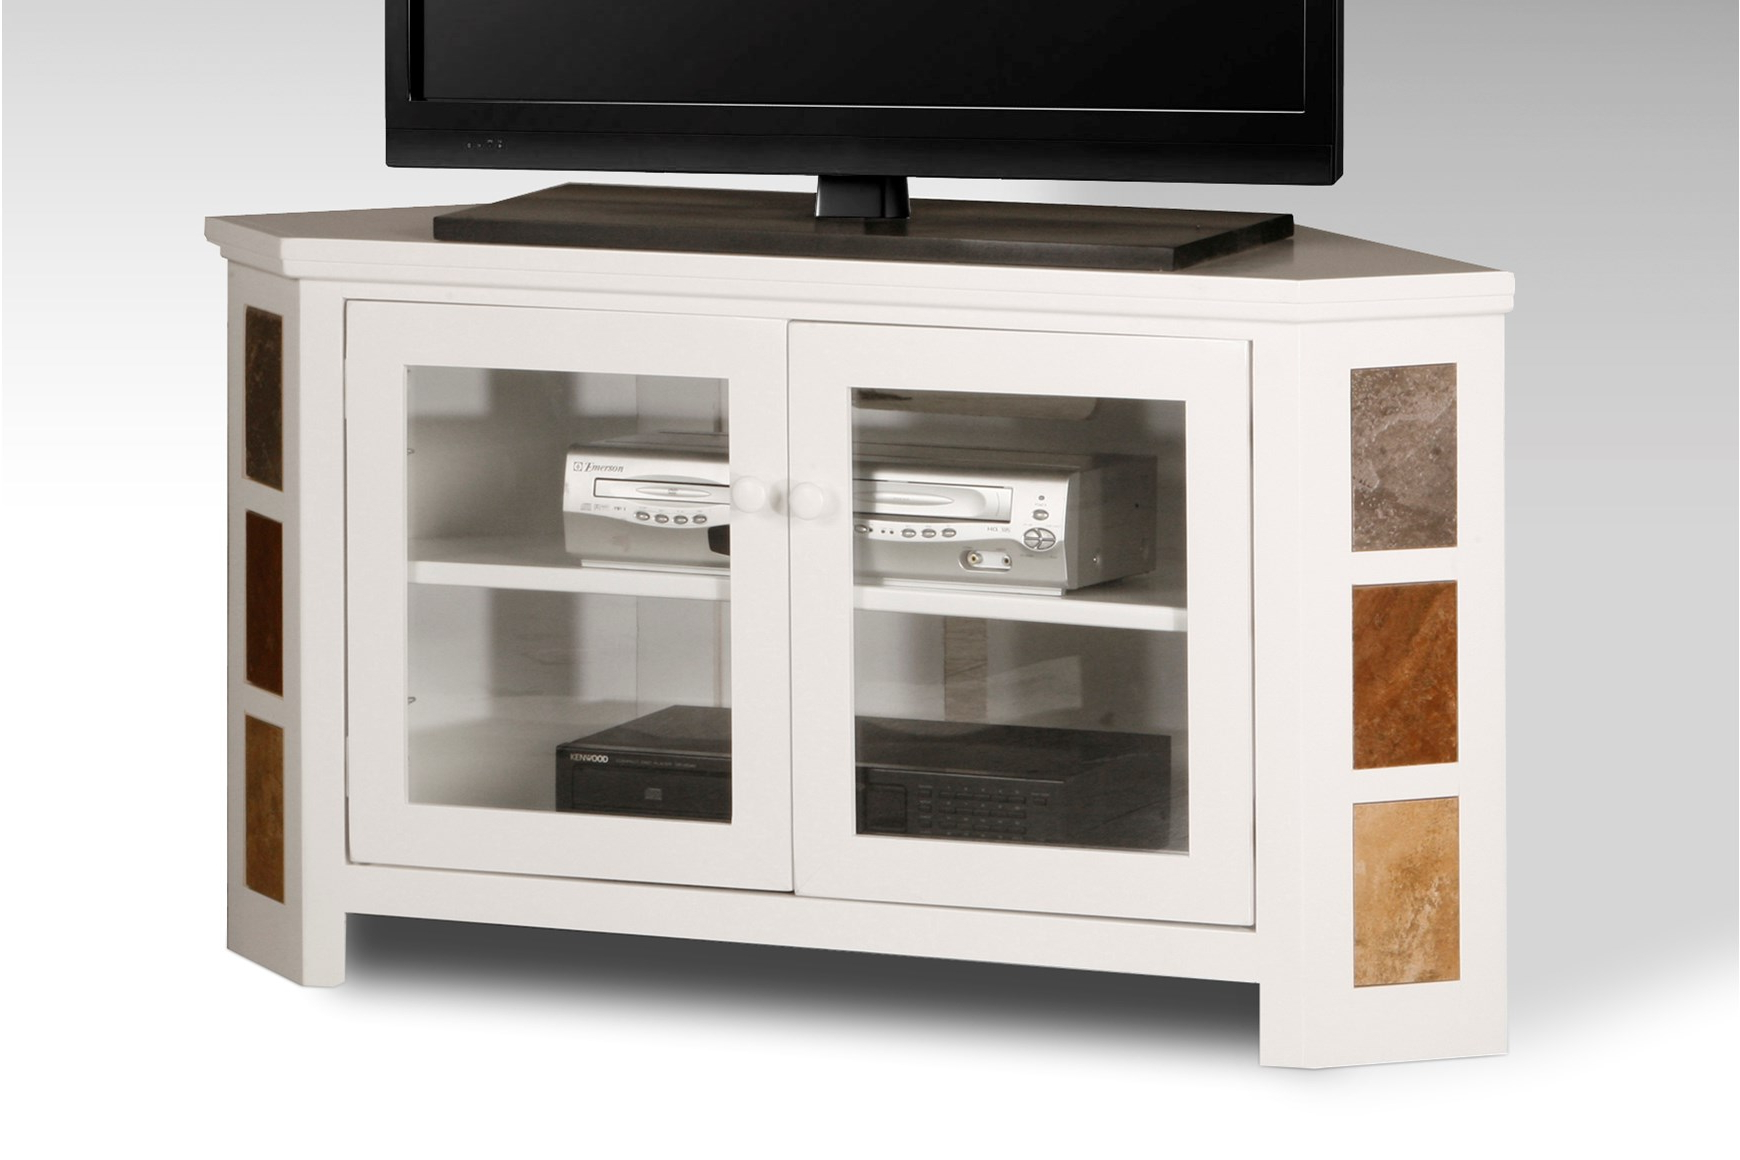 Rustic Corner Tv Cabinets Pertaining To Preferred Corner Rustic Tv Stand Plans White With Barn Doors Small Canada (View 14 of 20)